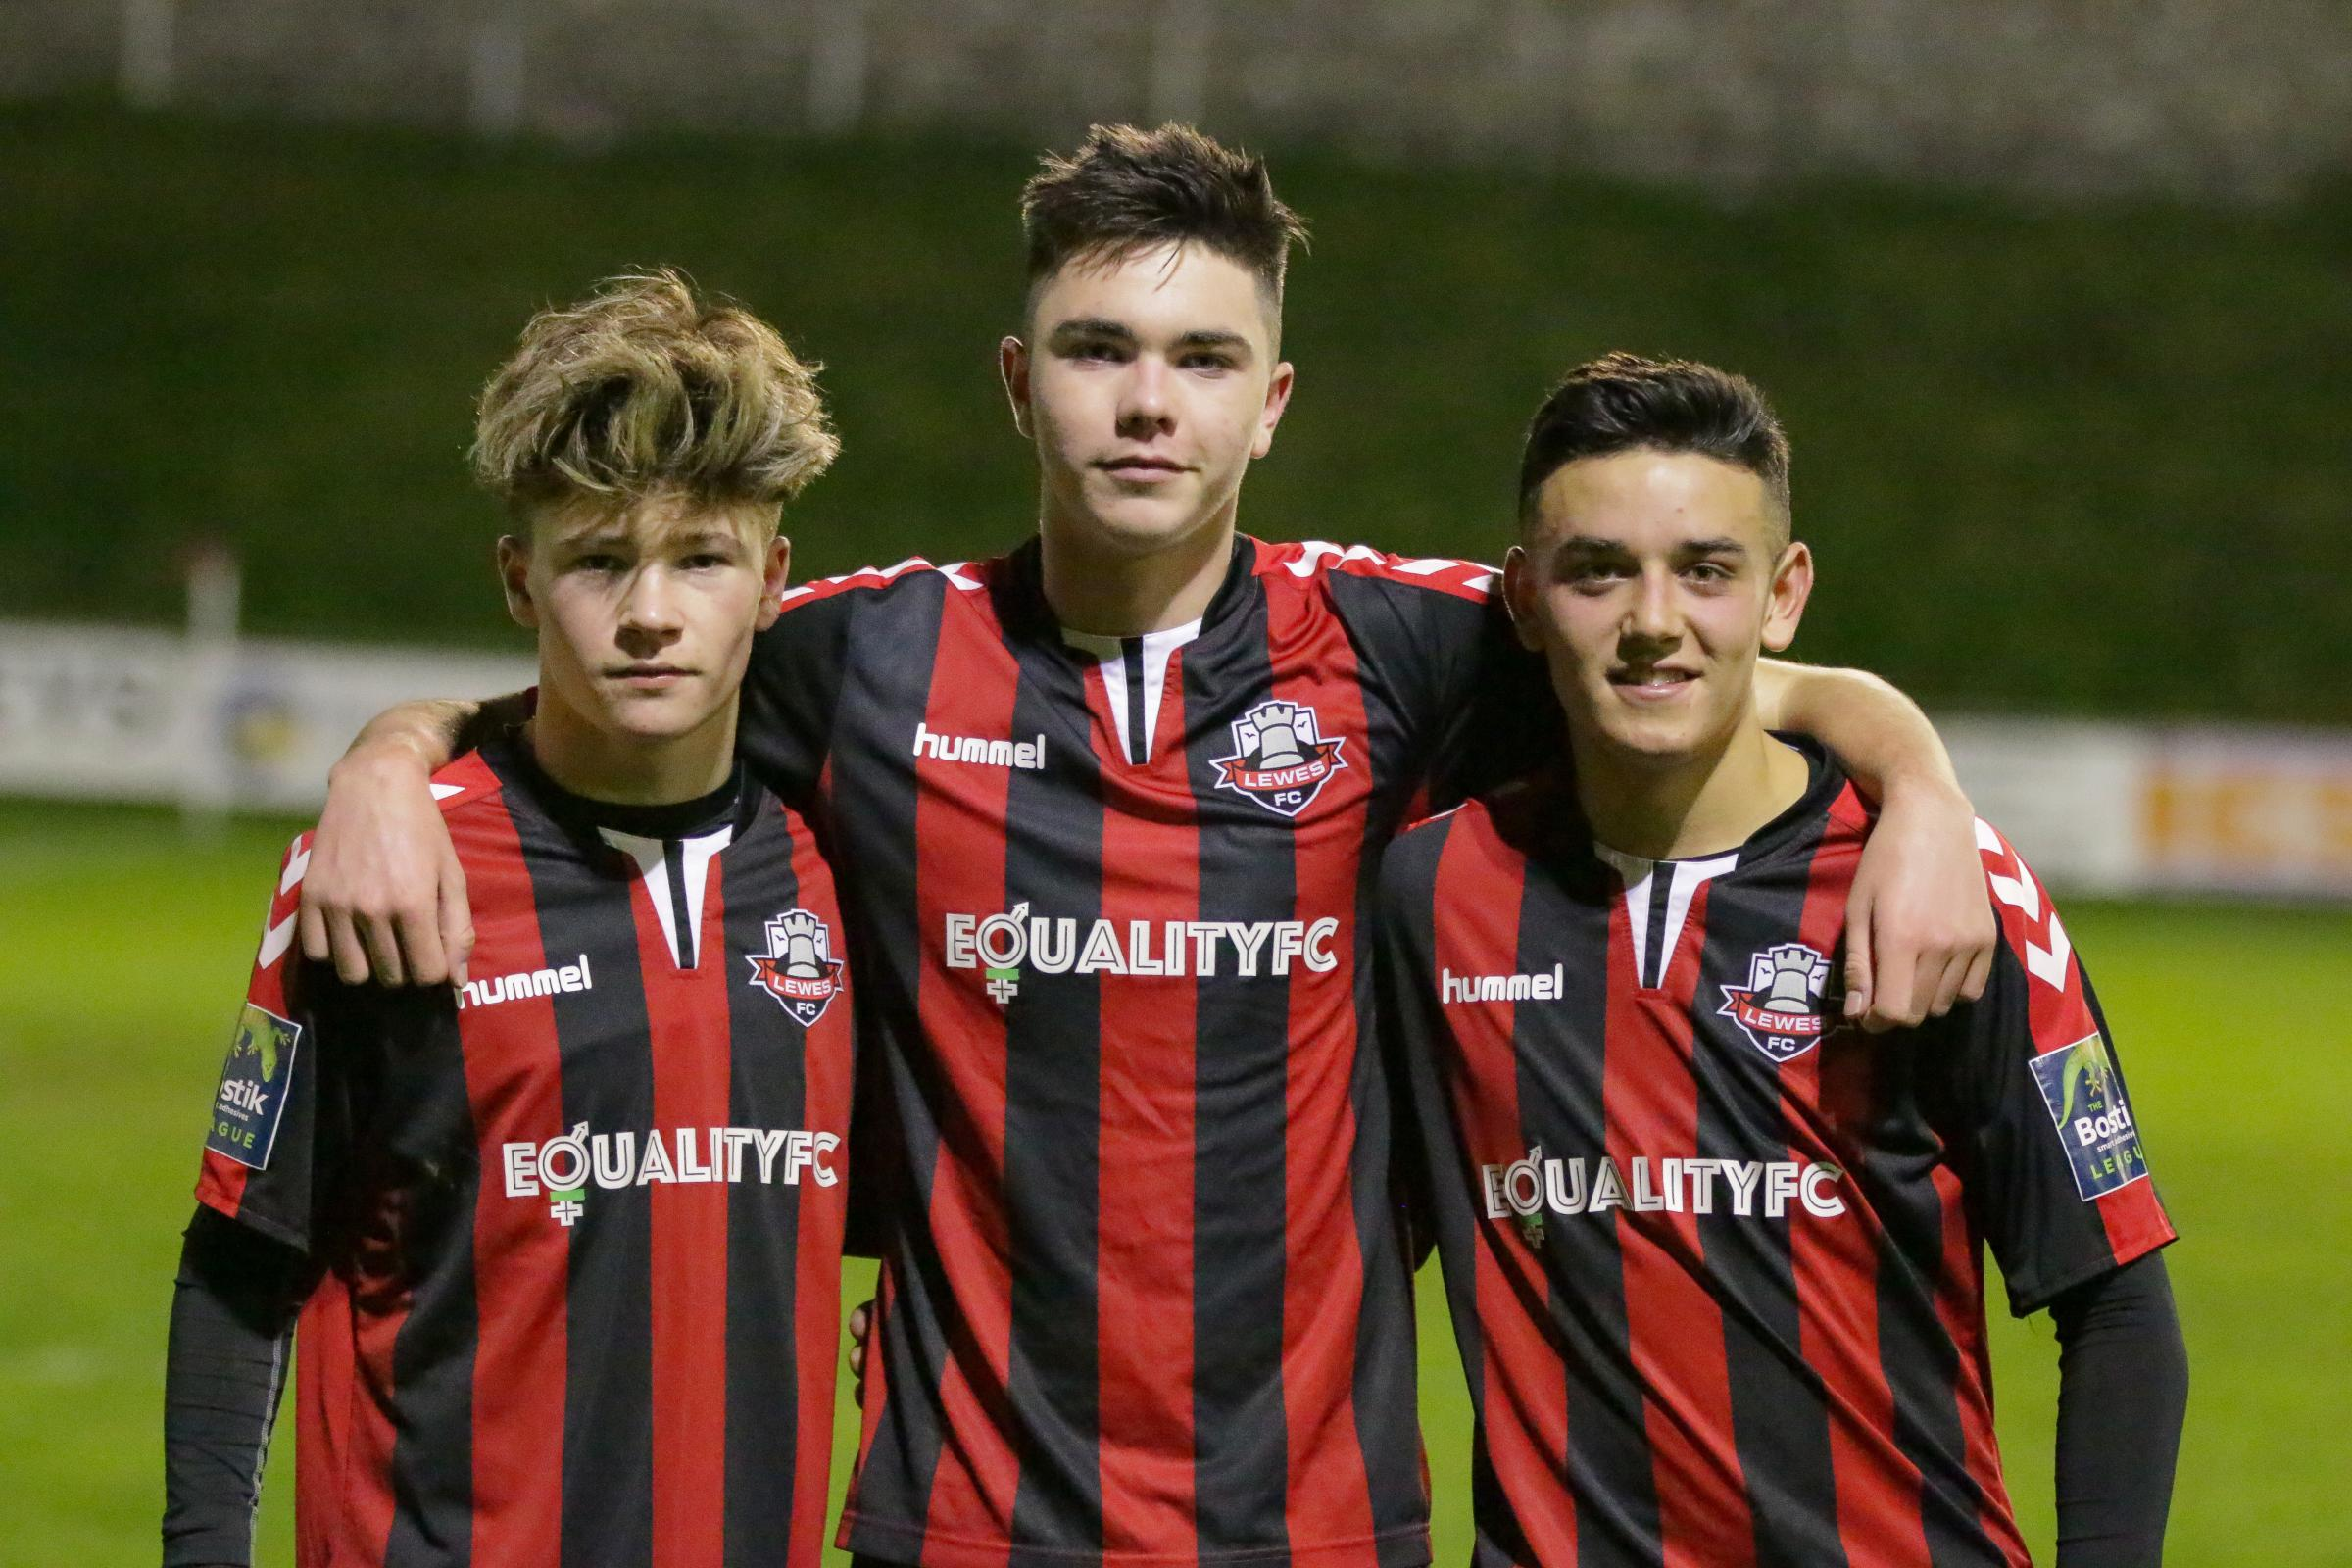 Lewes FC football players